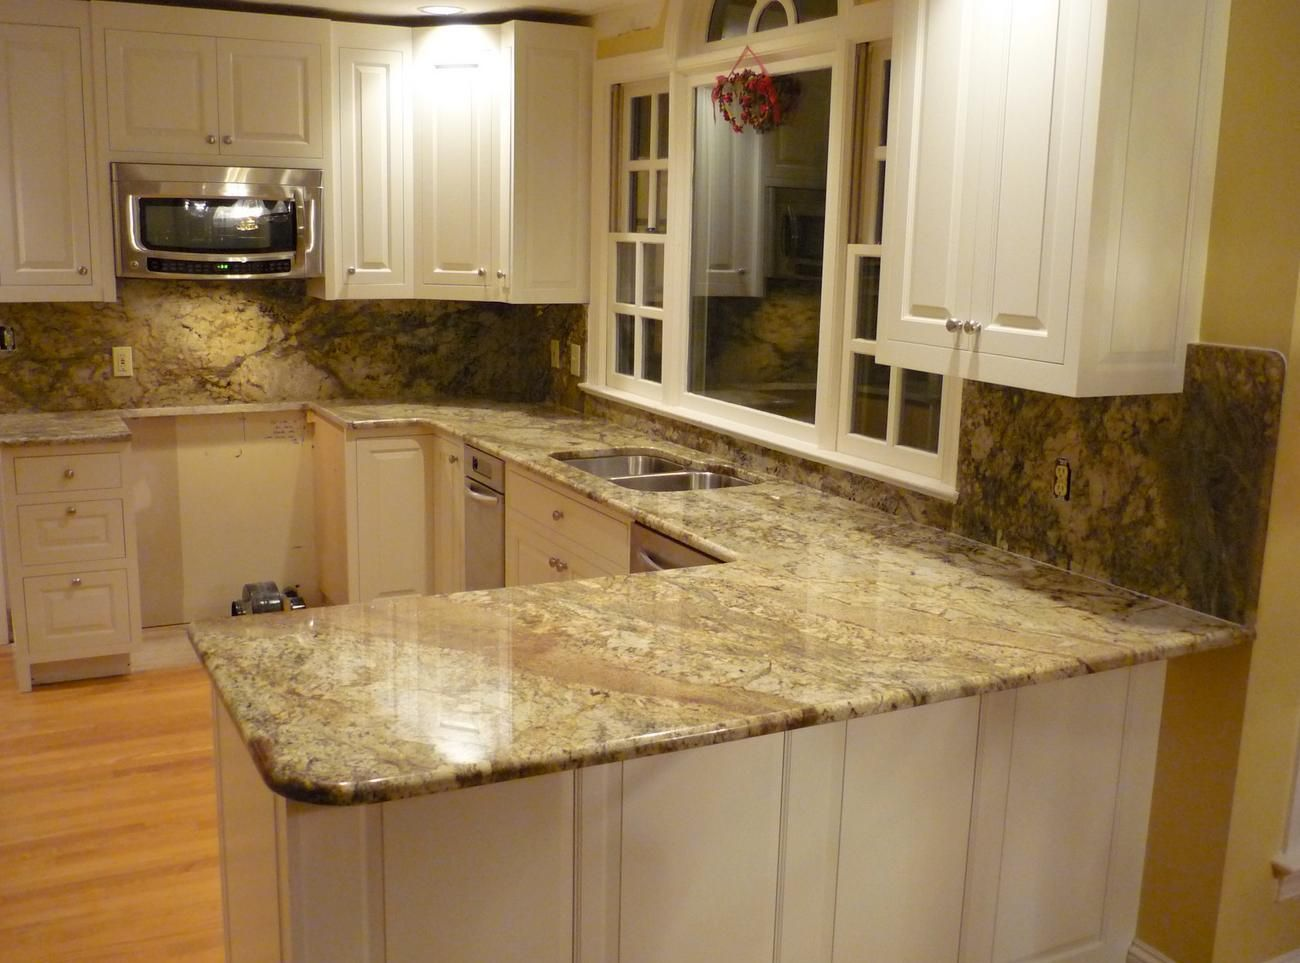 kitchen countertop guide spaces a how rooms for materials to diy best and popular countertops